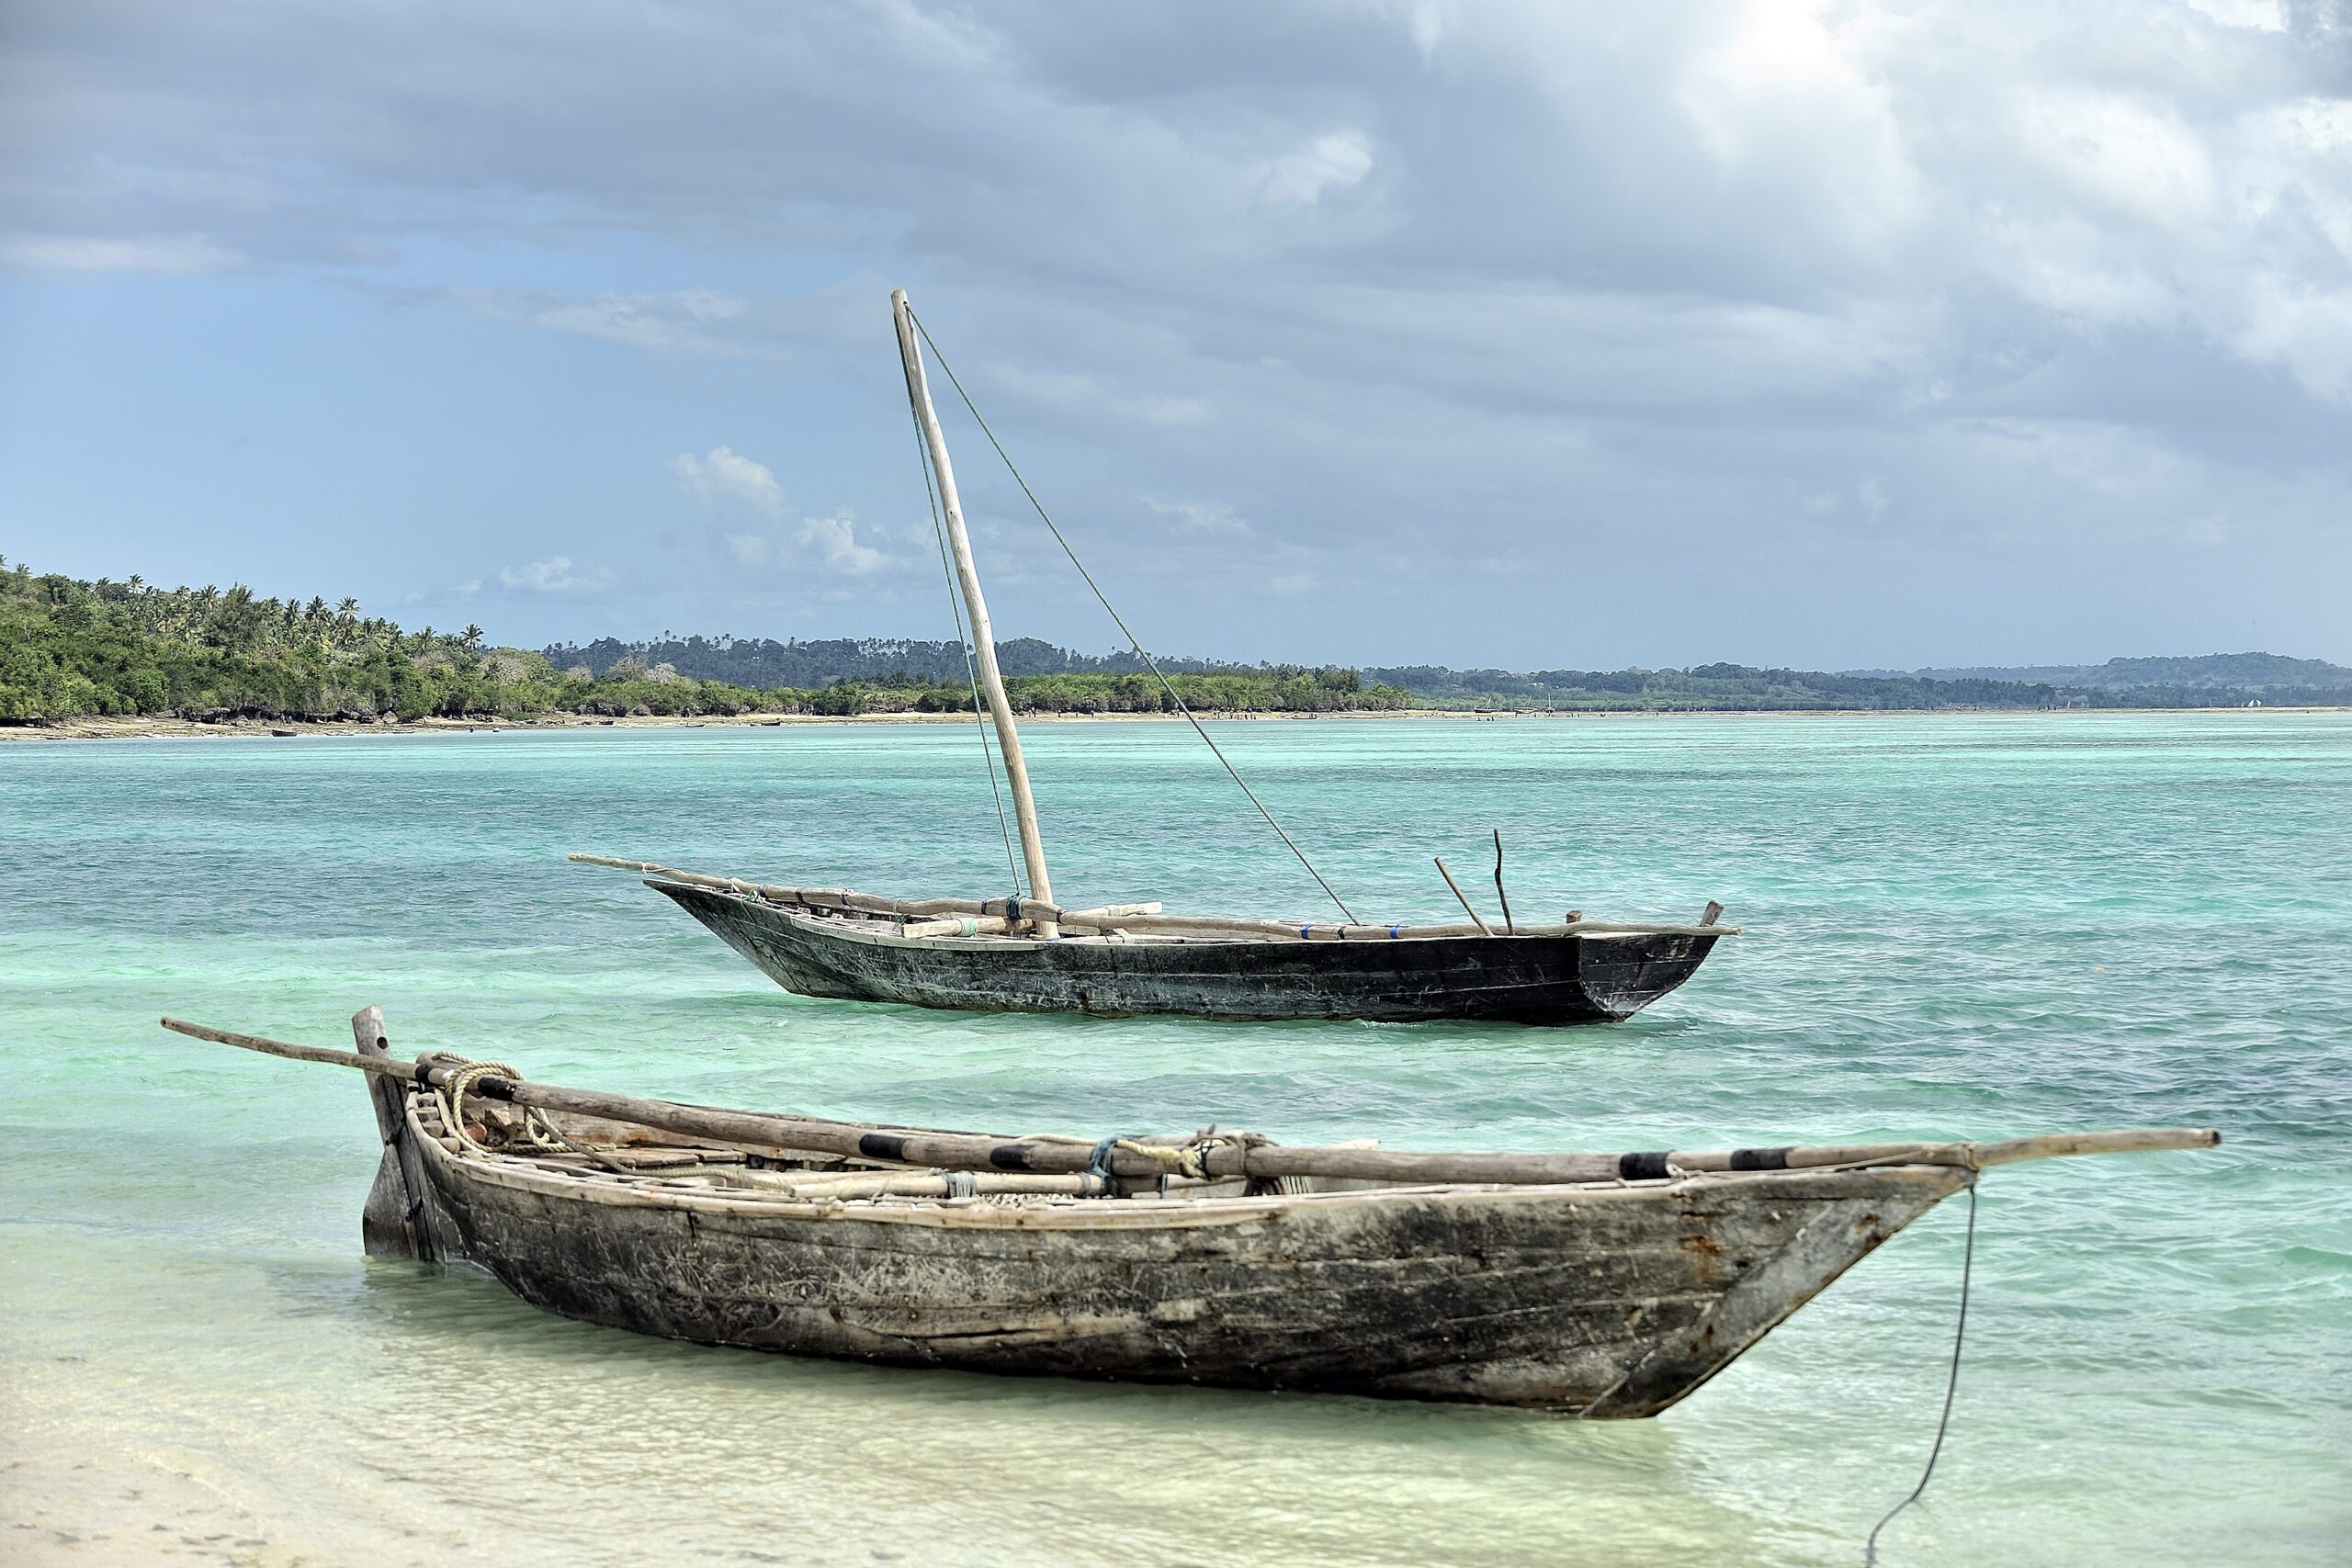 two fishing dhows in turquoise water on white sandy beach